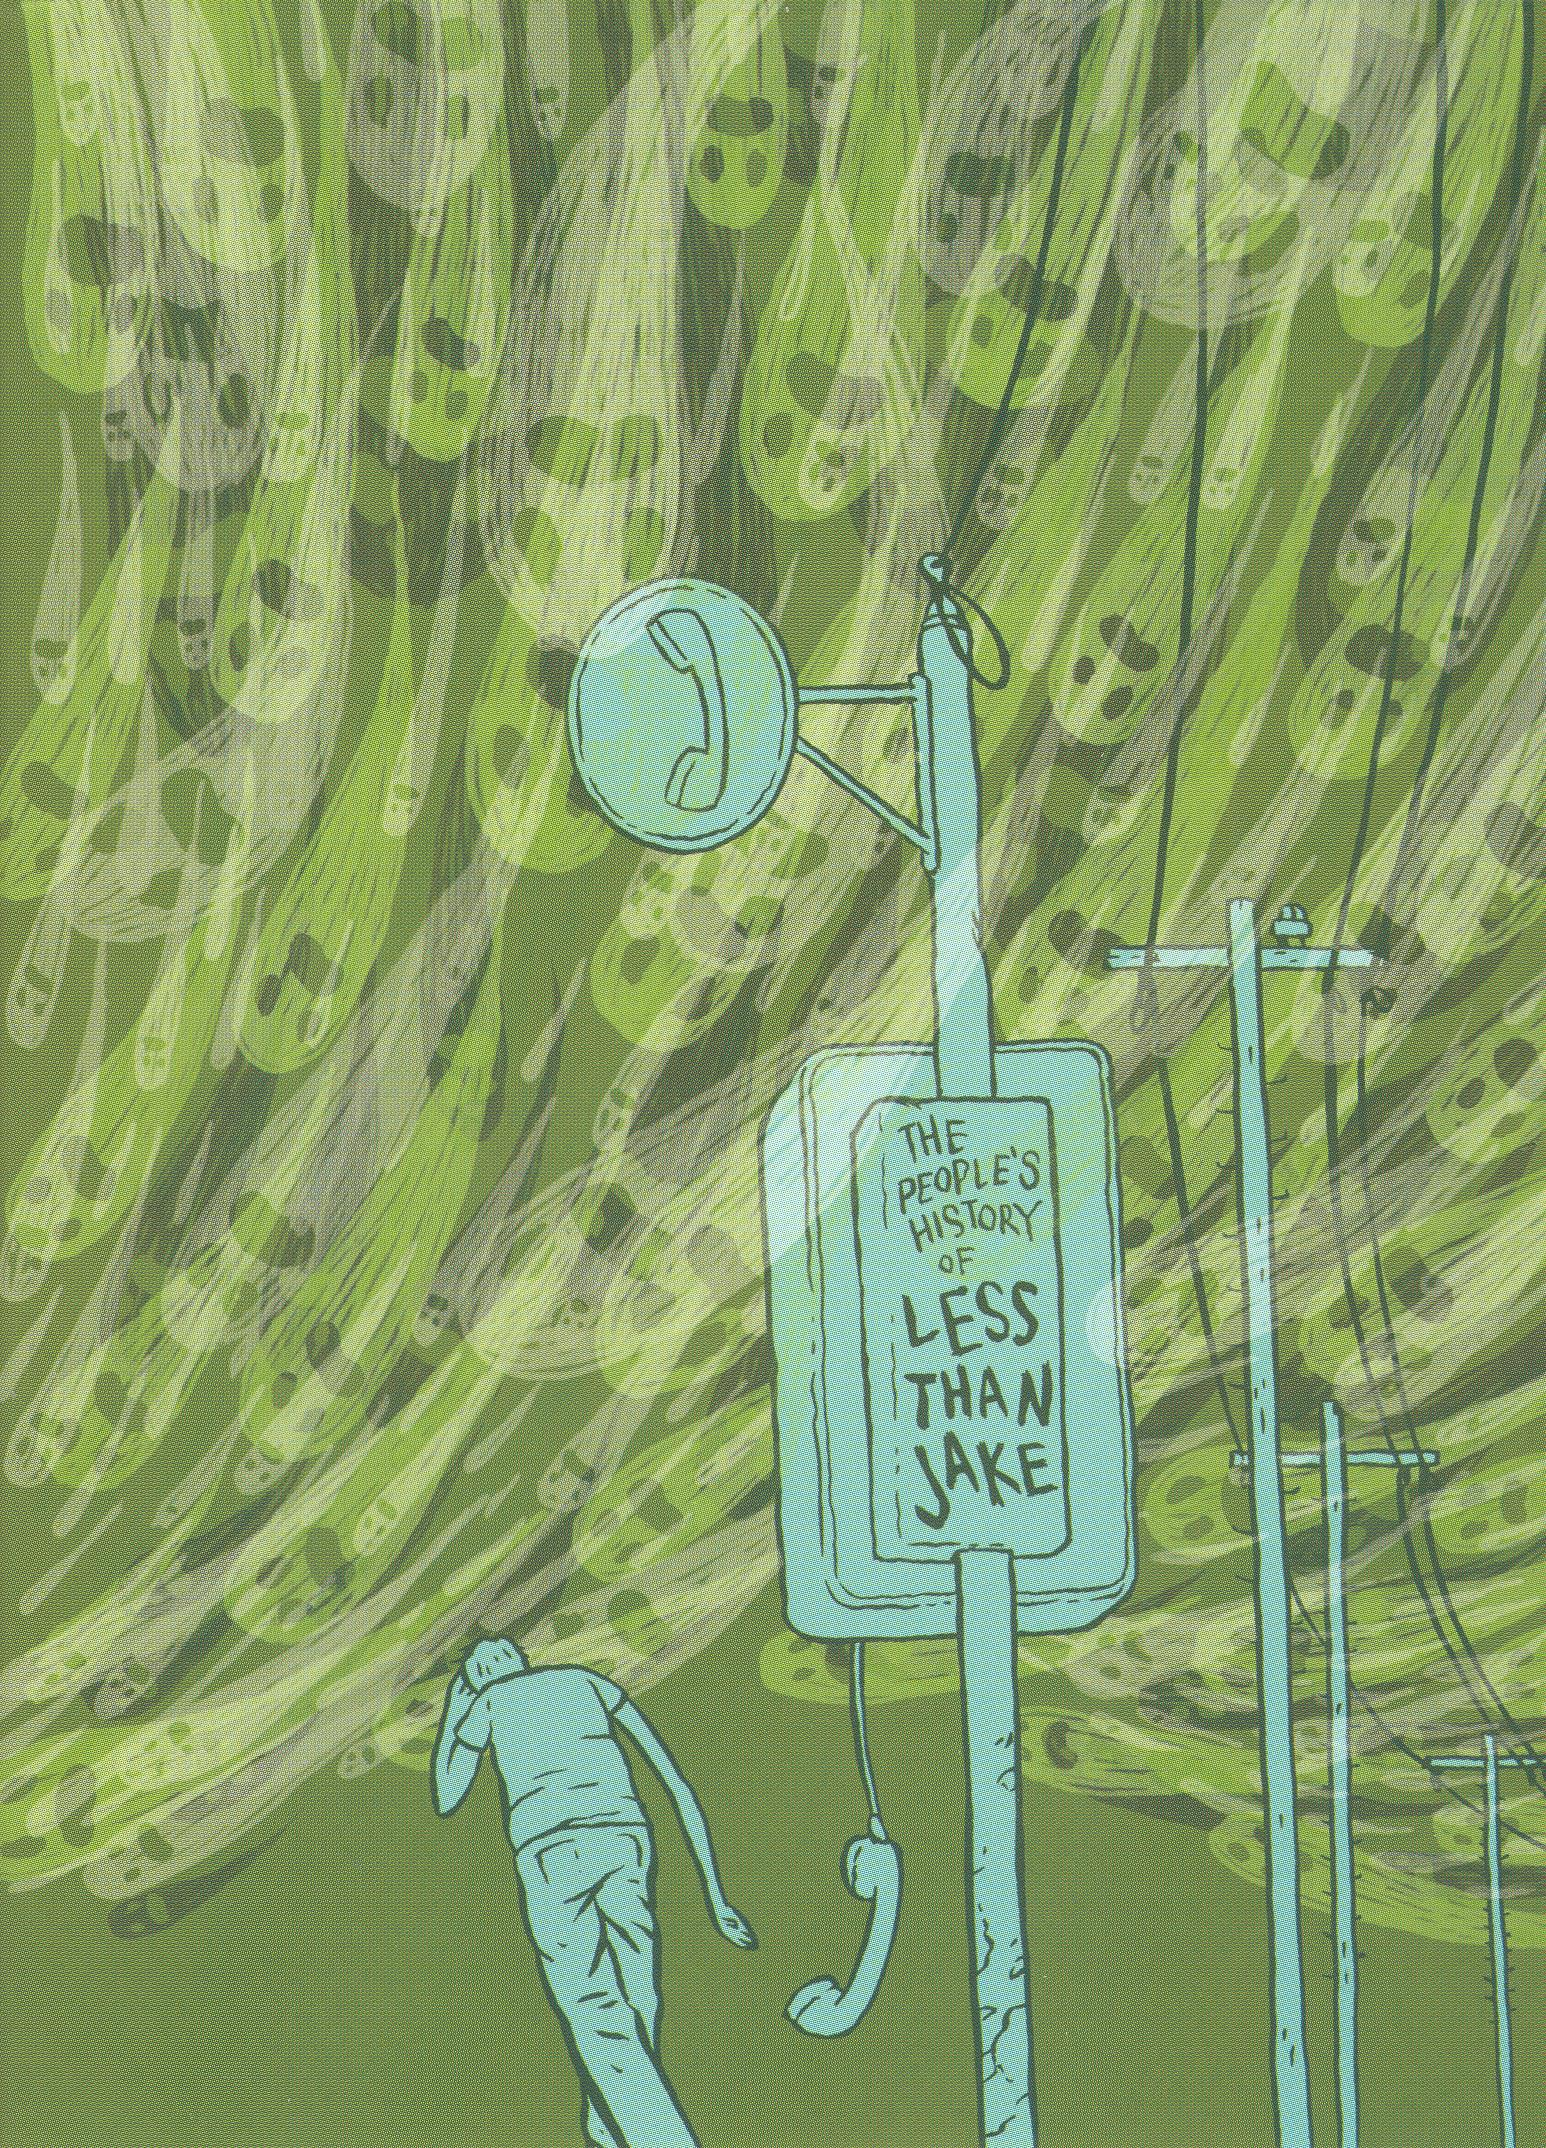 Less Than Jake: The People's History of Less Than Jake